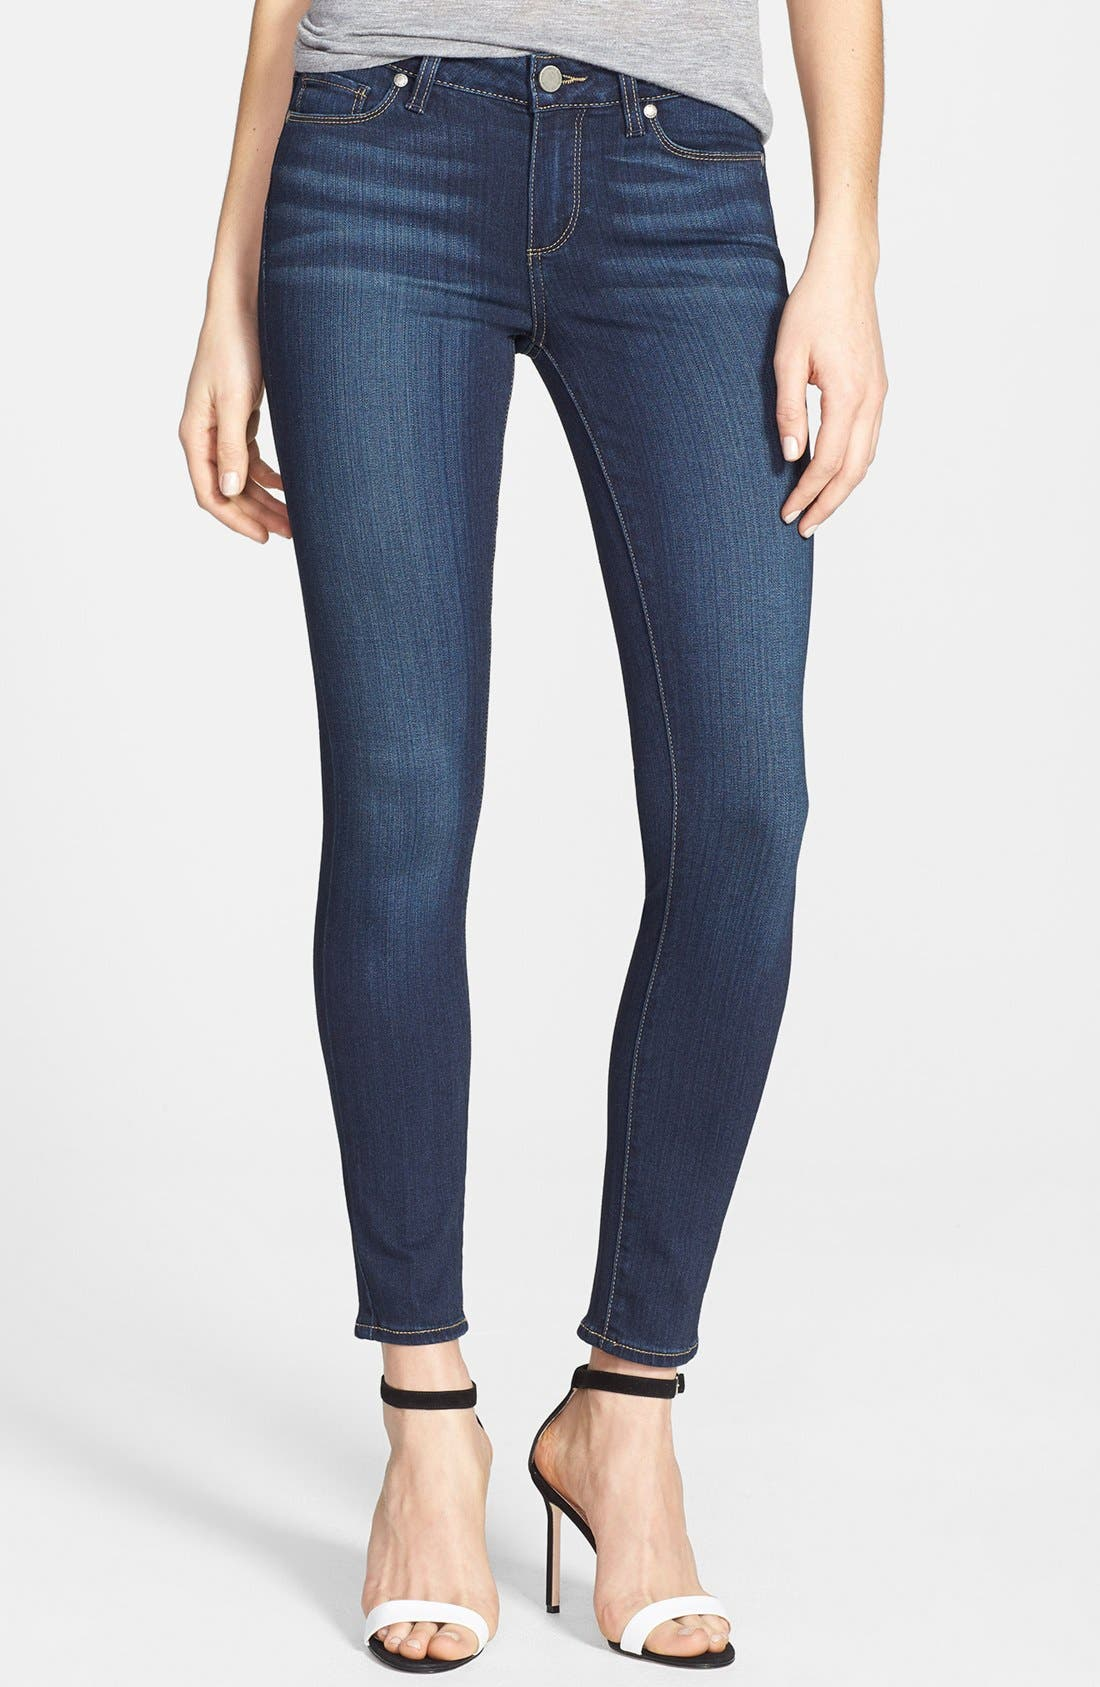 Alternate Image 1 Selected - PAIGE 'Transcend - Verdugo' Ankle Skinny Jeans (Nottingham)